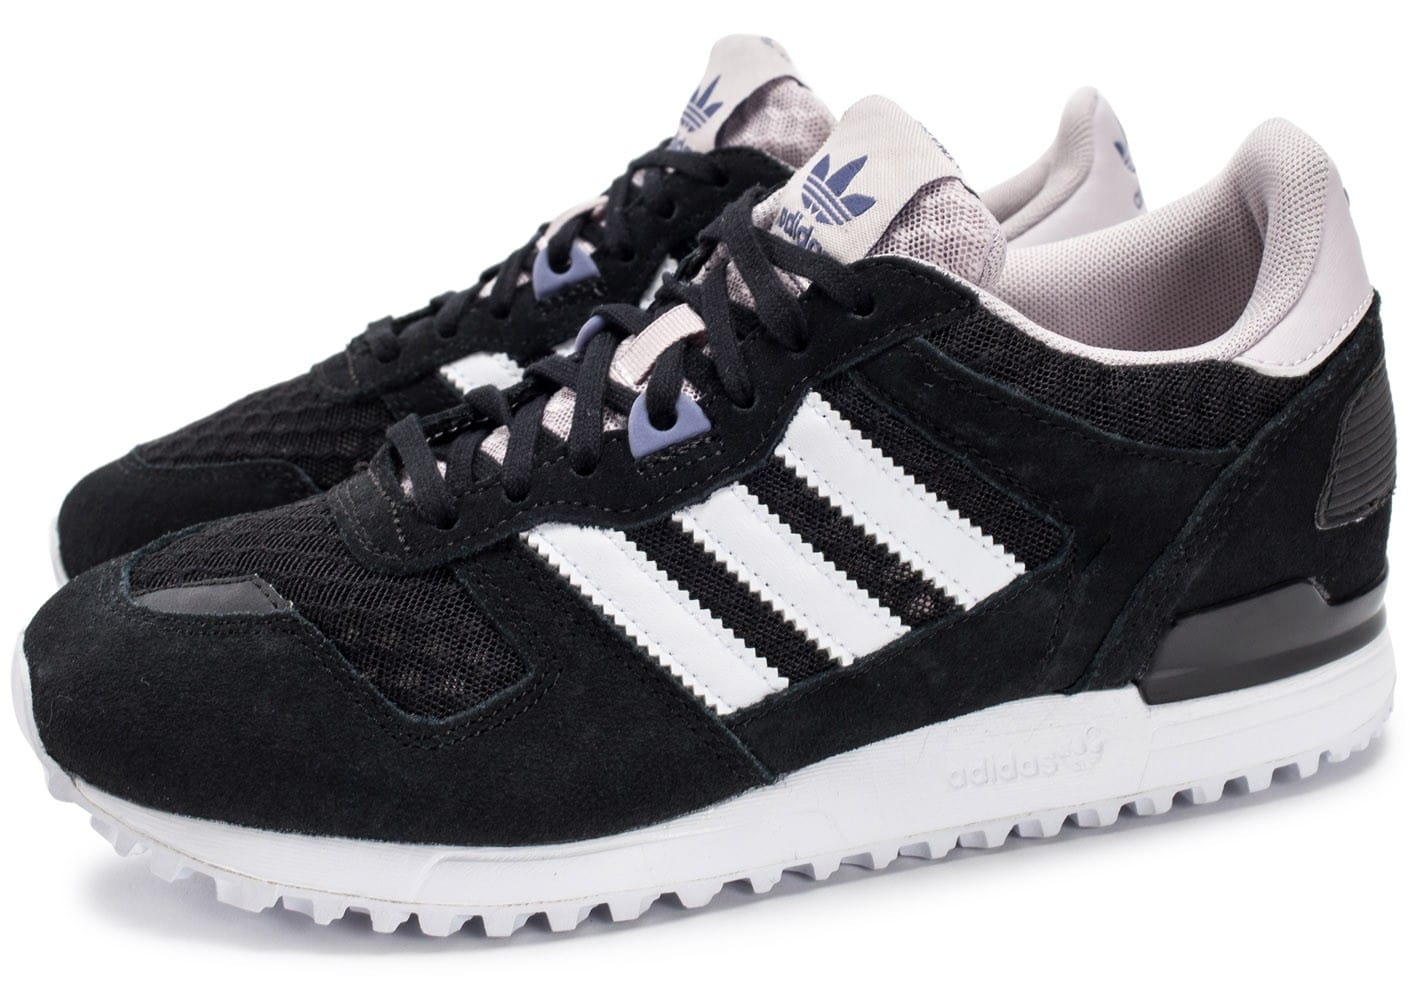 chaussures adidas zx 700 w